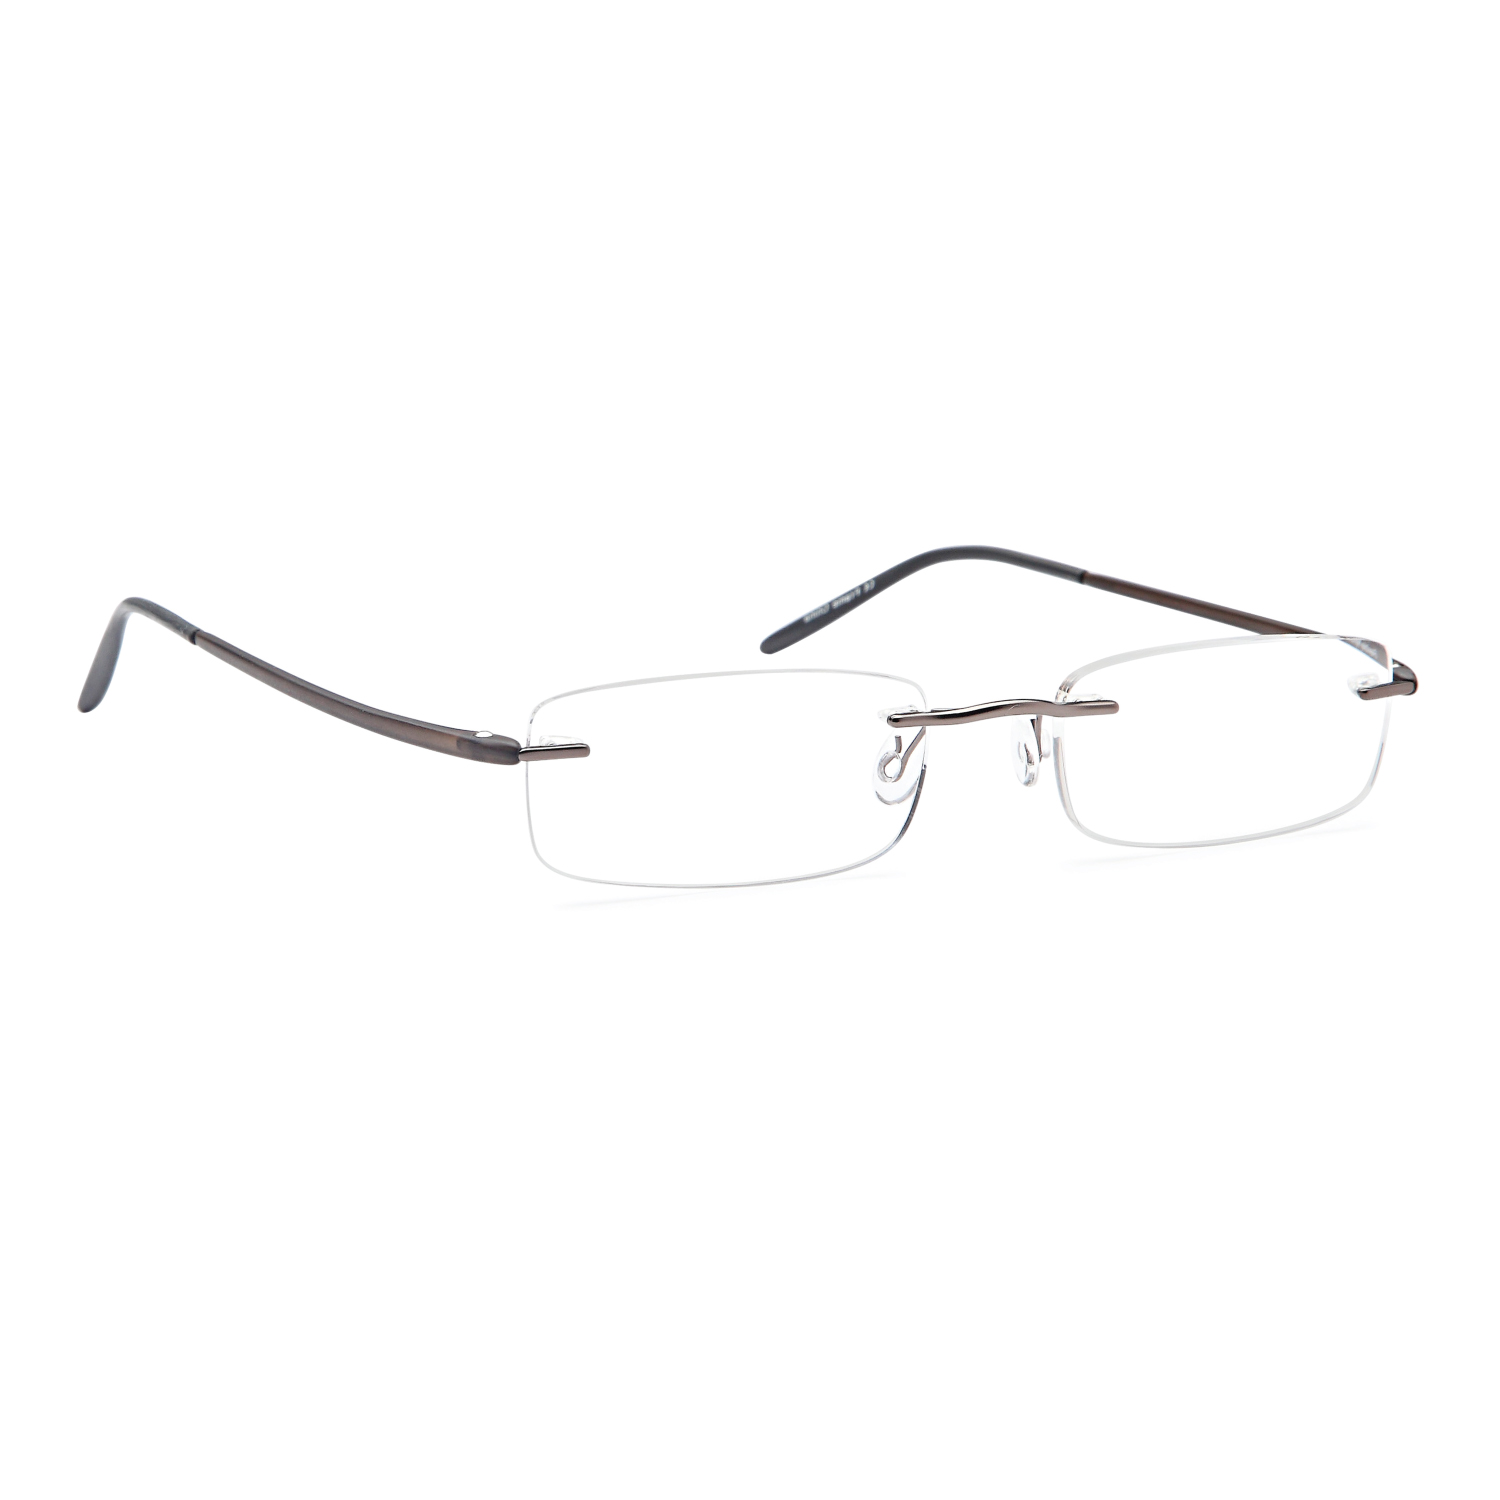 4d08931a7937 ALTEC VISION Minimalist Rimless Reading Glasses for Men and Women in  Stainless Steel and TR90 Temple Arms for Maximum Comfort and Lightweight Fit